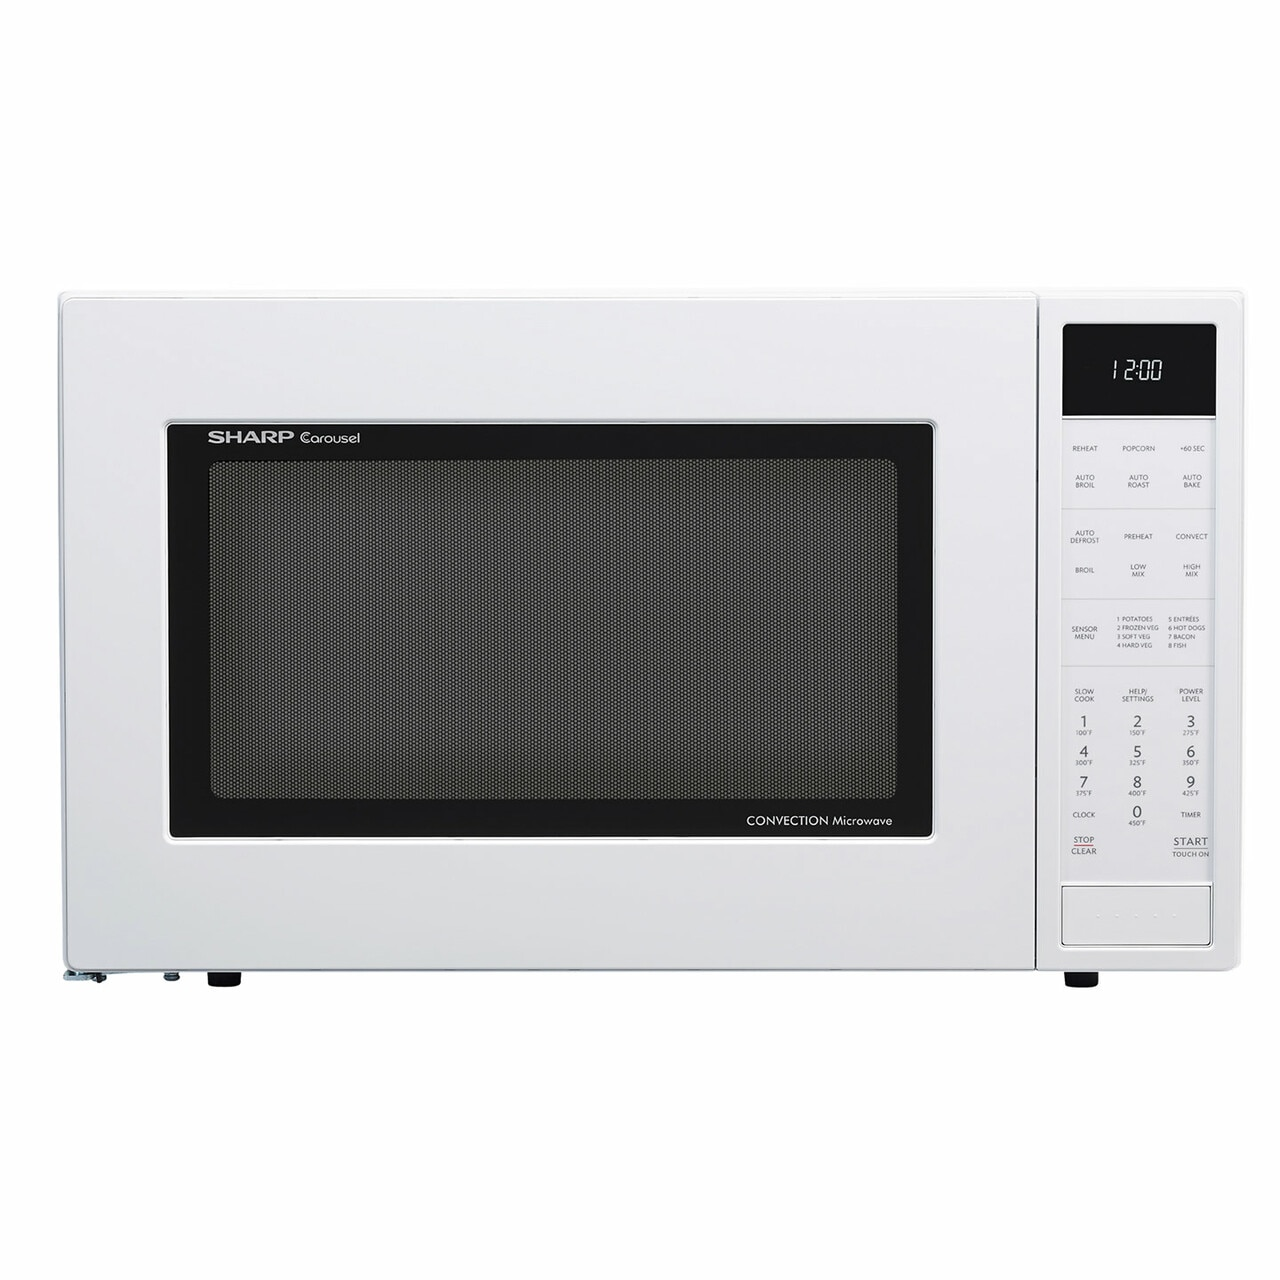 1.5 cu. ft. Sharp White Carousel Convection Microwave (SMC1585BW)